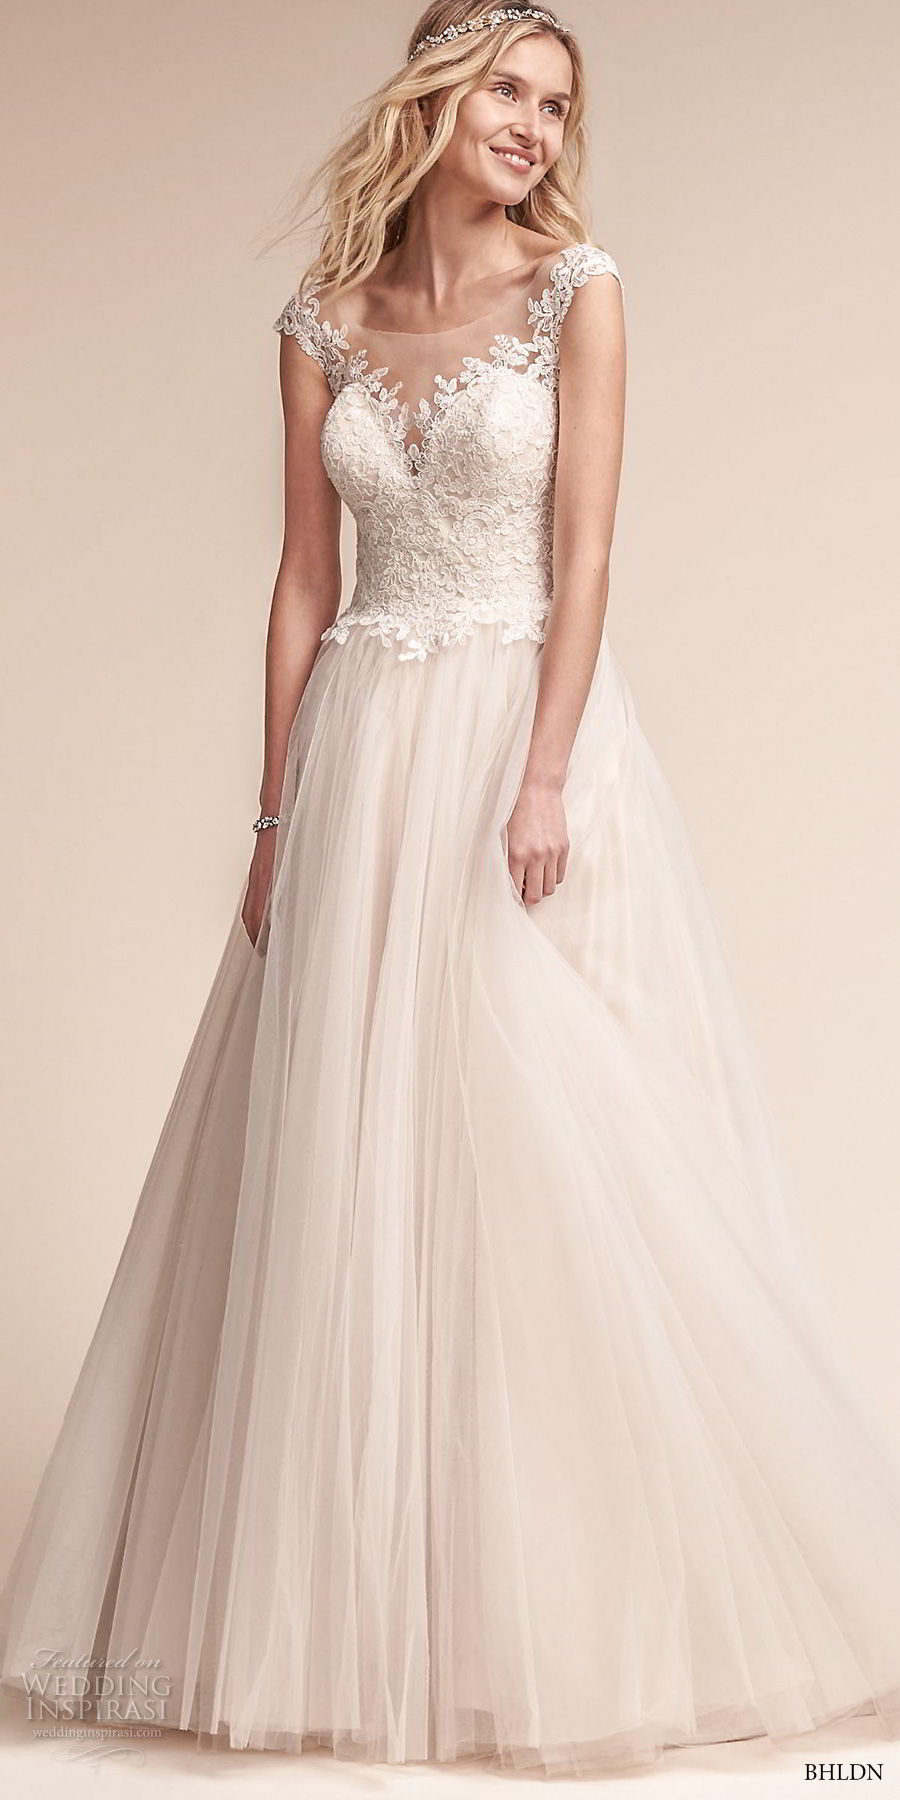 bhldn fall 2017  americana bridal cap sleeves illusion bateau neck sweetheart neckline heavily embellished bodice tulle skirt romantic a  line wedding dress open scoop back sweep train (carly) mv